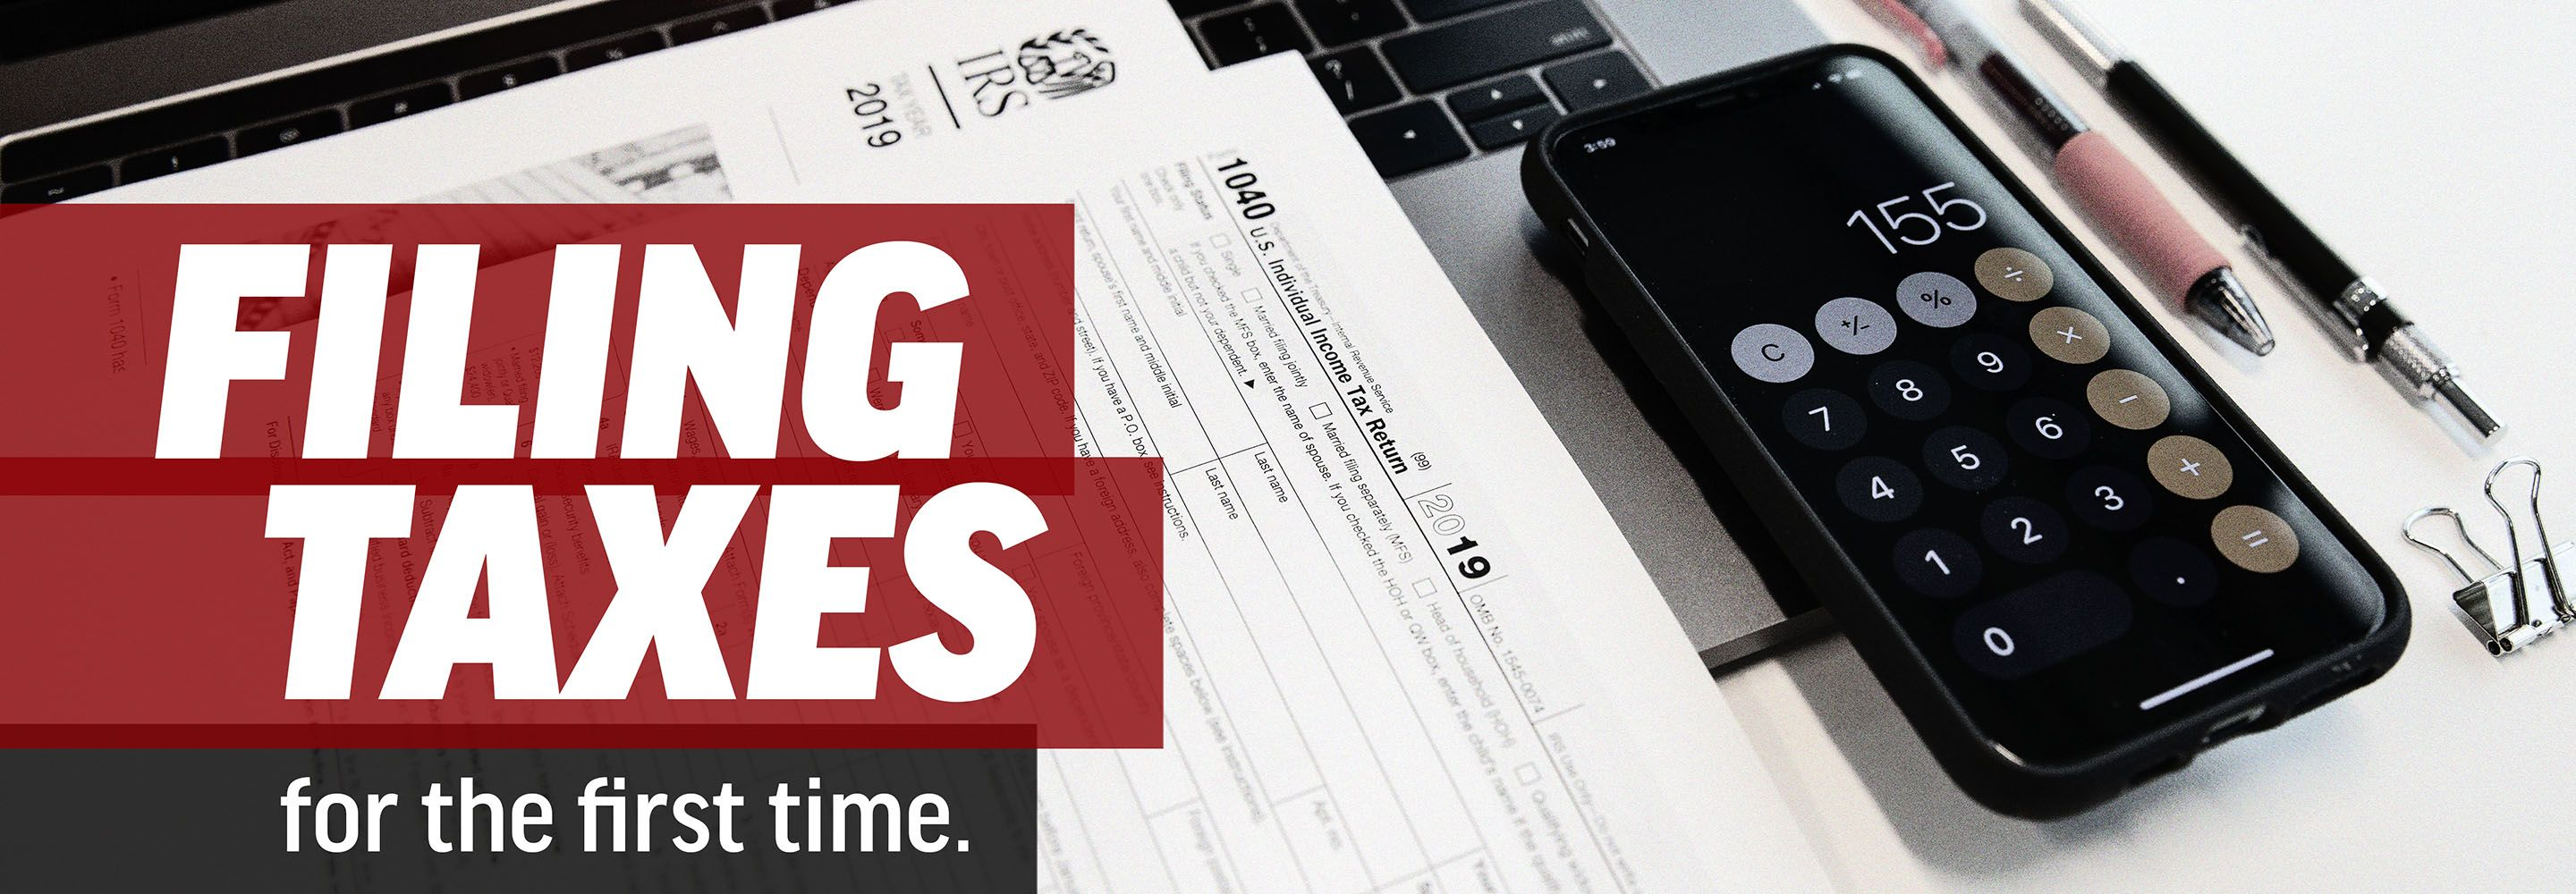 How to File Taxes for the First Time Filing taxes